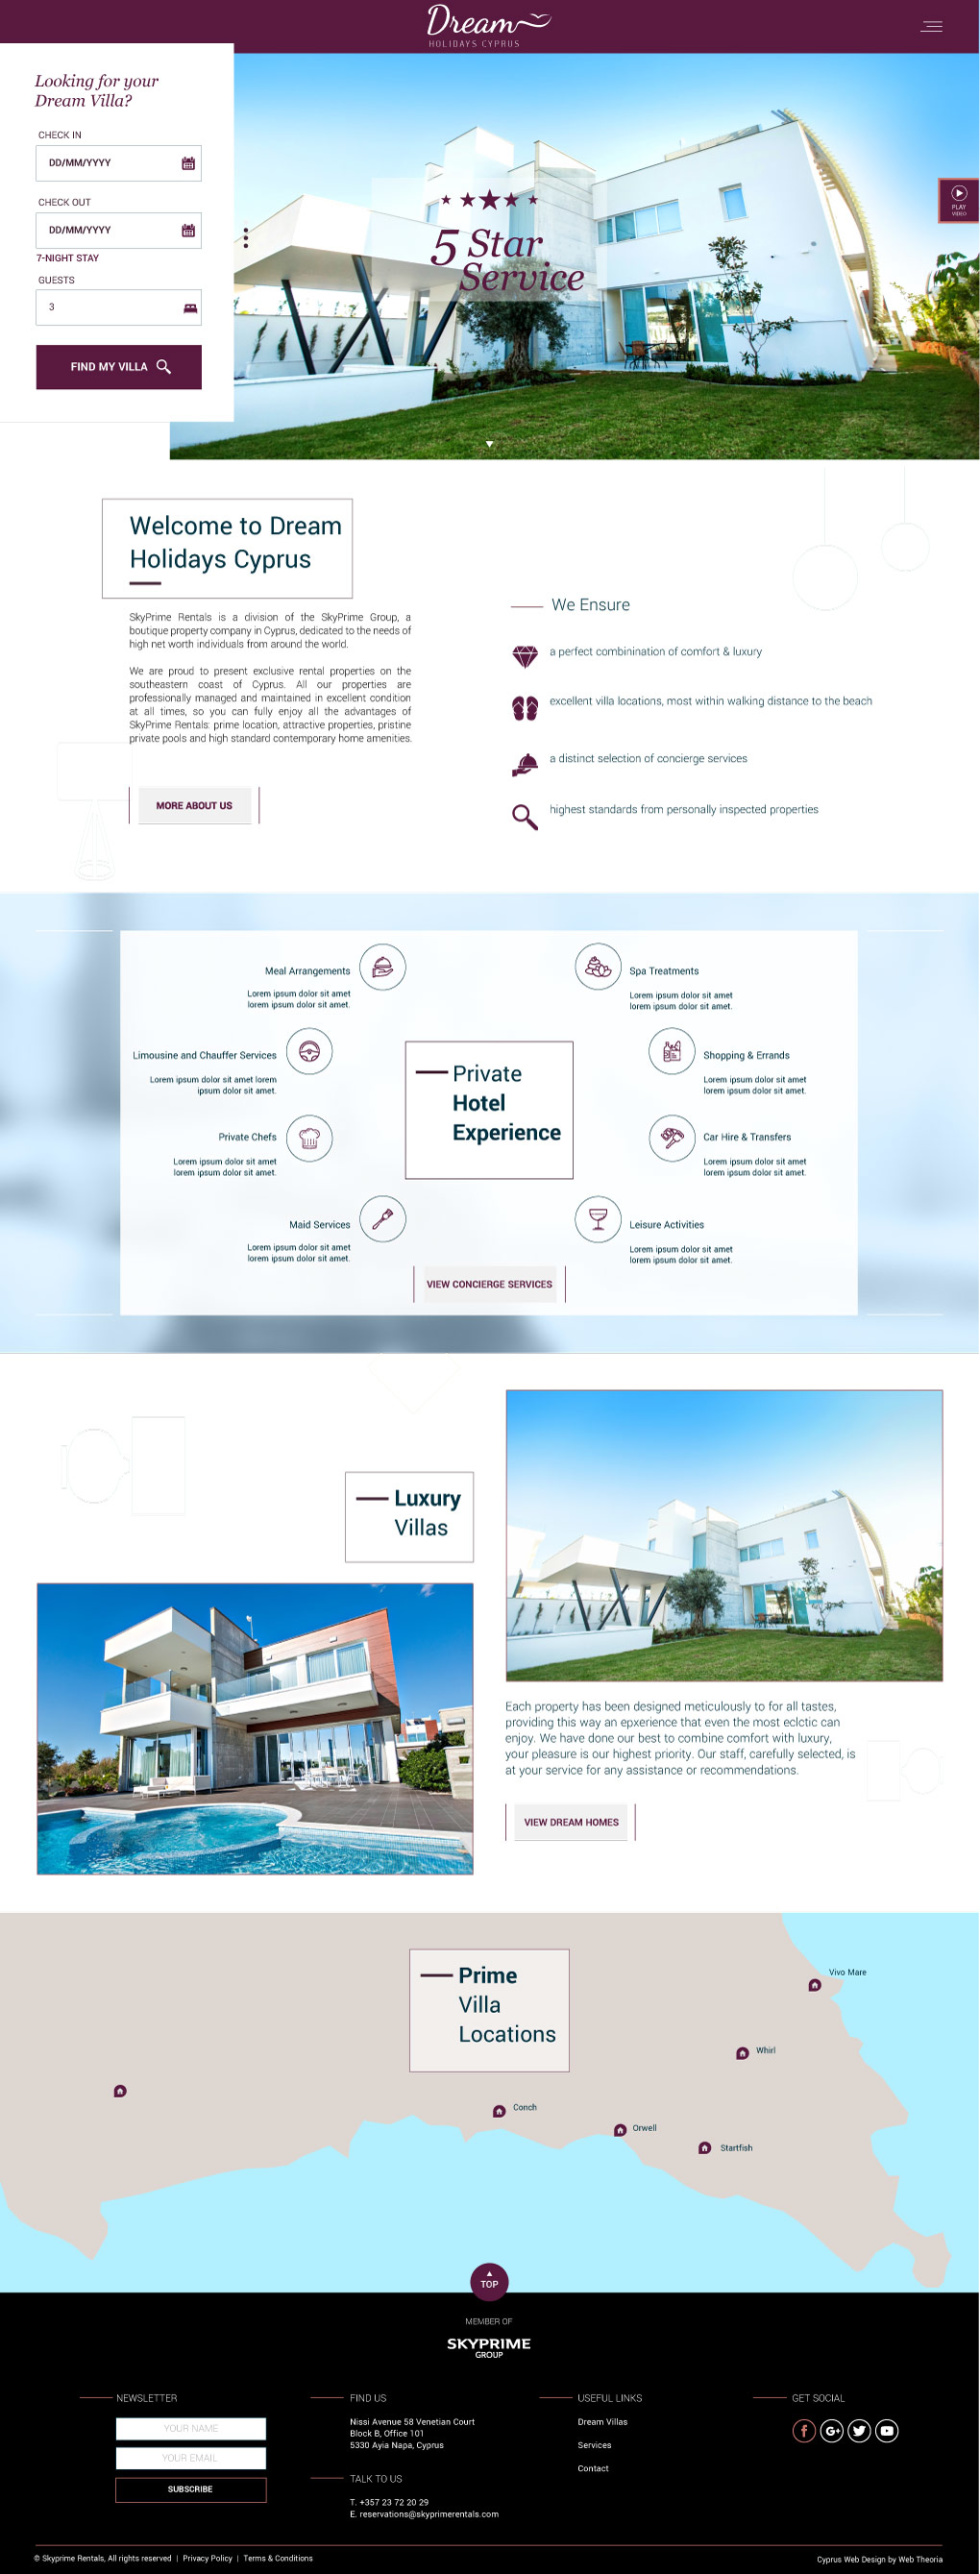 Email template screenshot for luxury hotel company. Template includes many photographs and graphics which explains the hotel experience. A map at the bottom is included which specifies the exact location of the hotel.